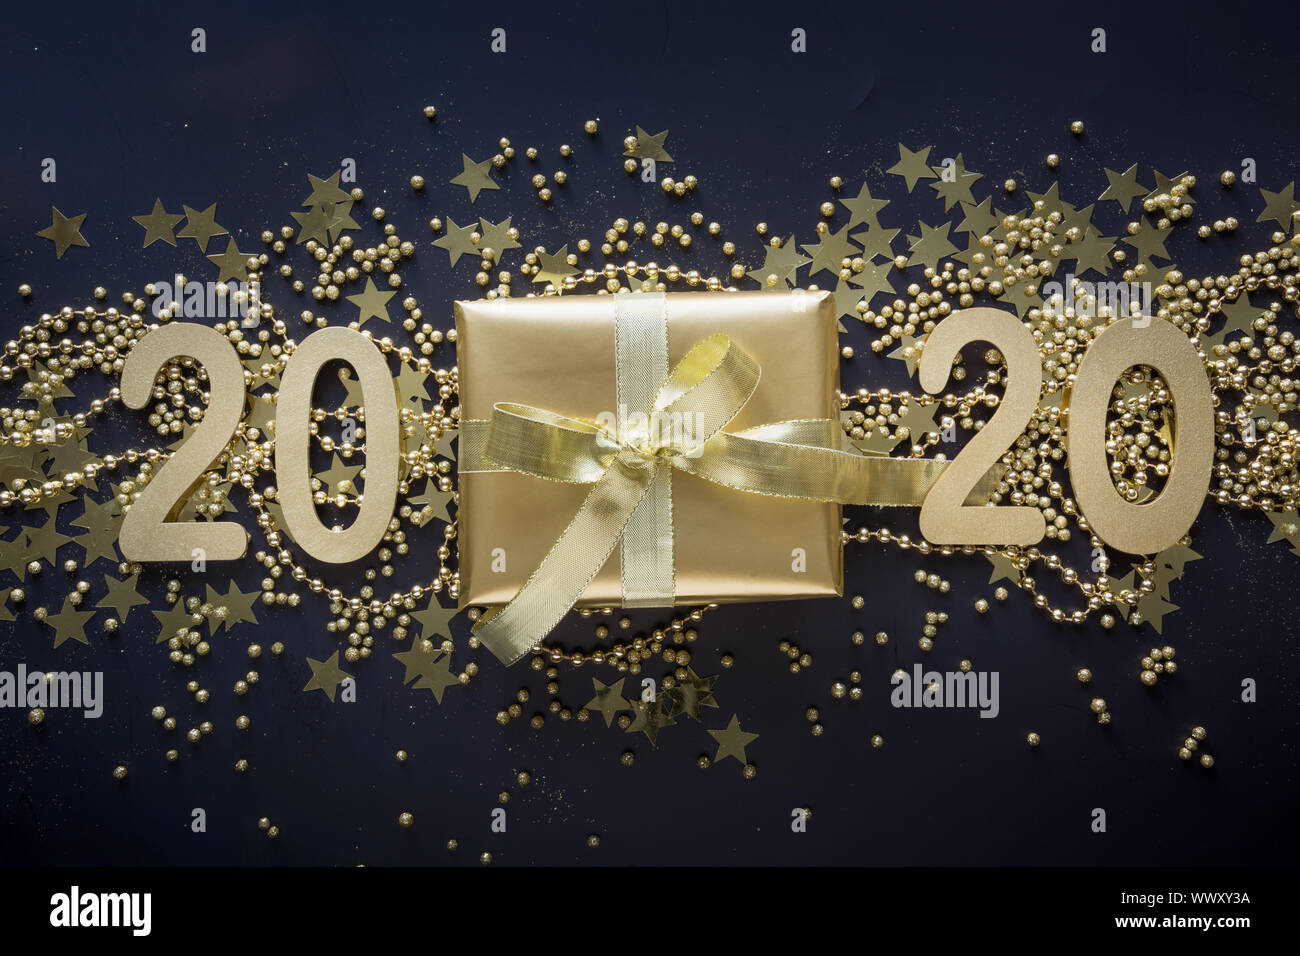 Present Christmas 2020 Luxury golden gift box with gold ribbon on shine black background